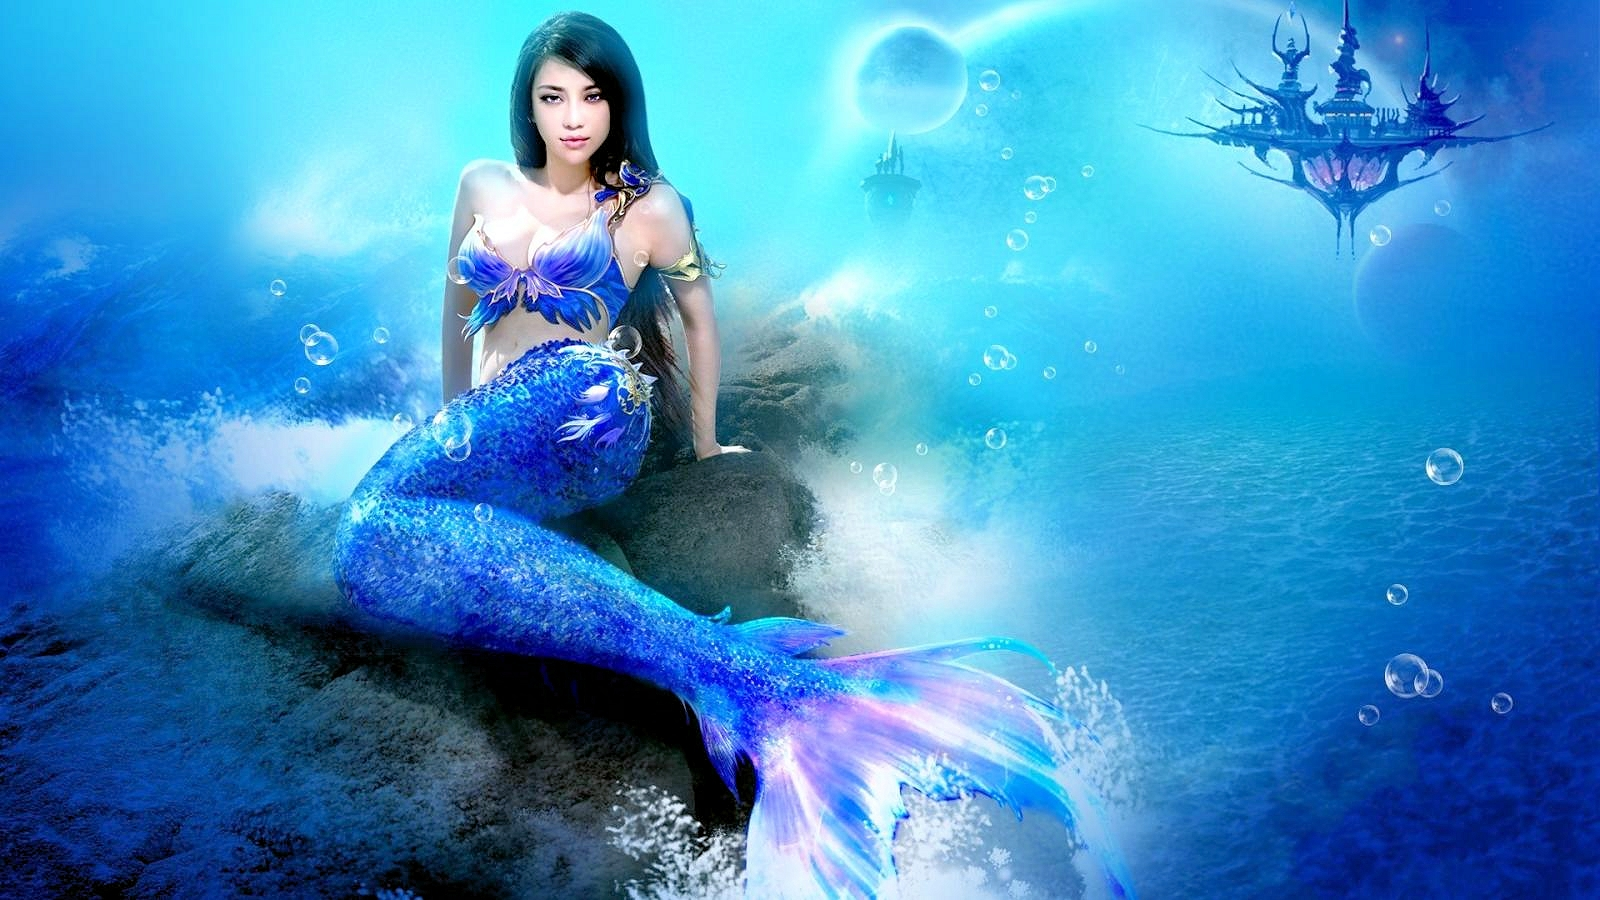 Beautiful Mermaids Images